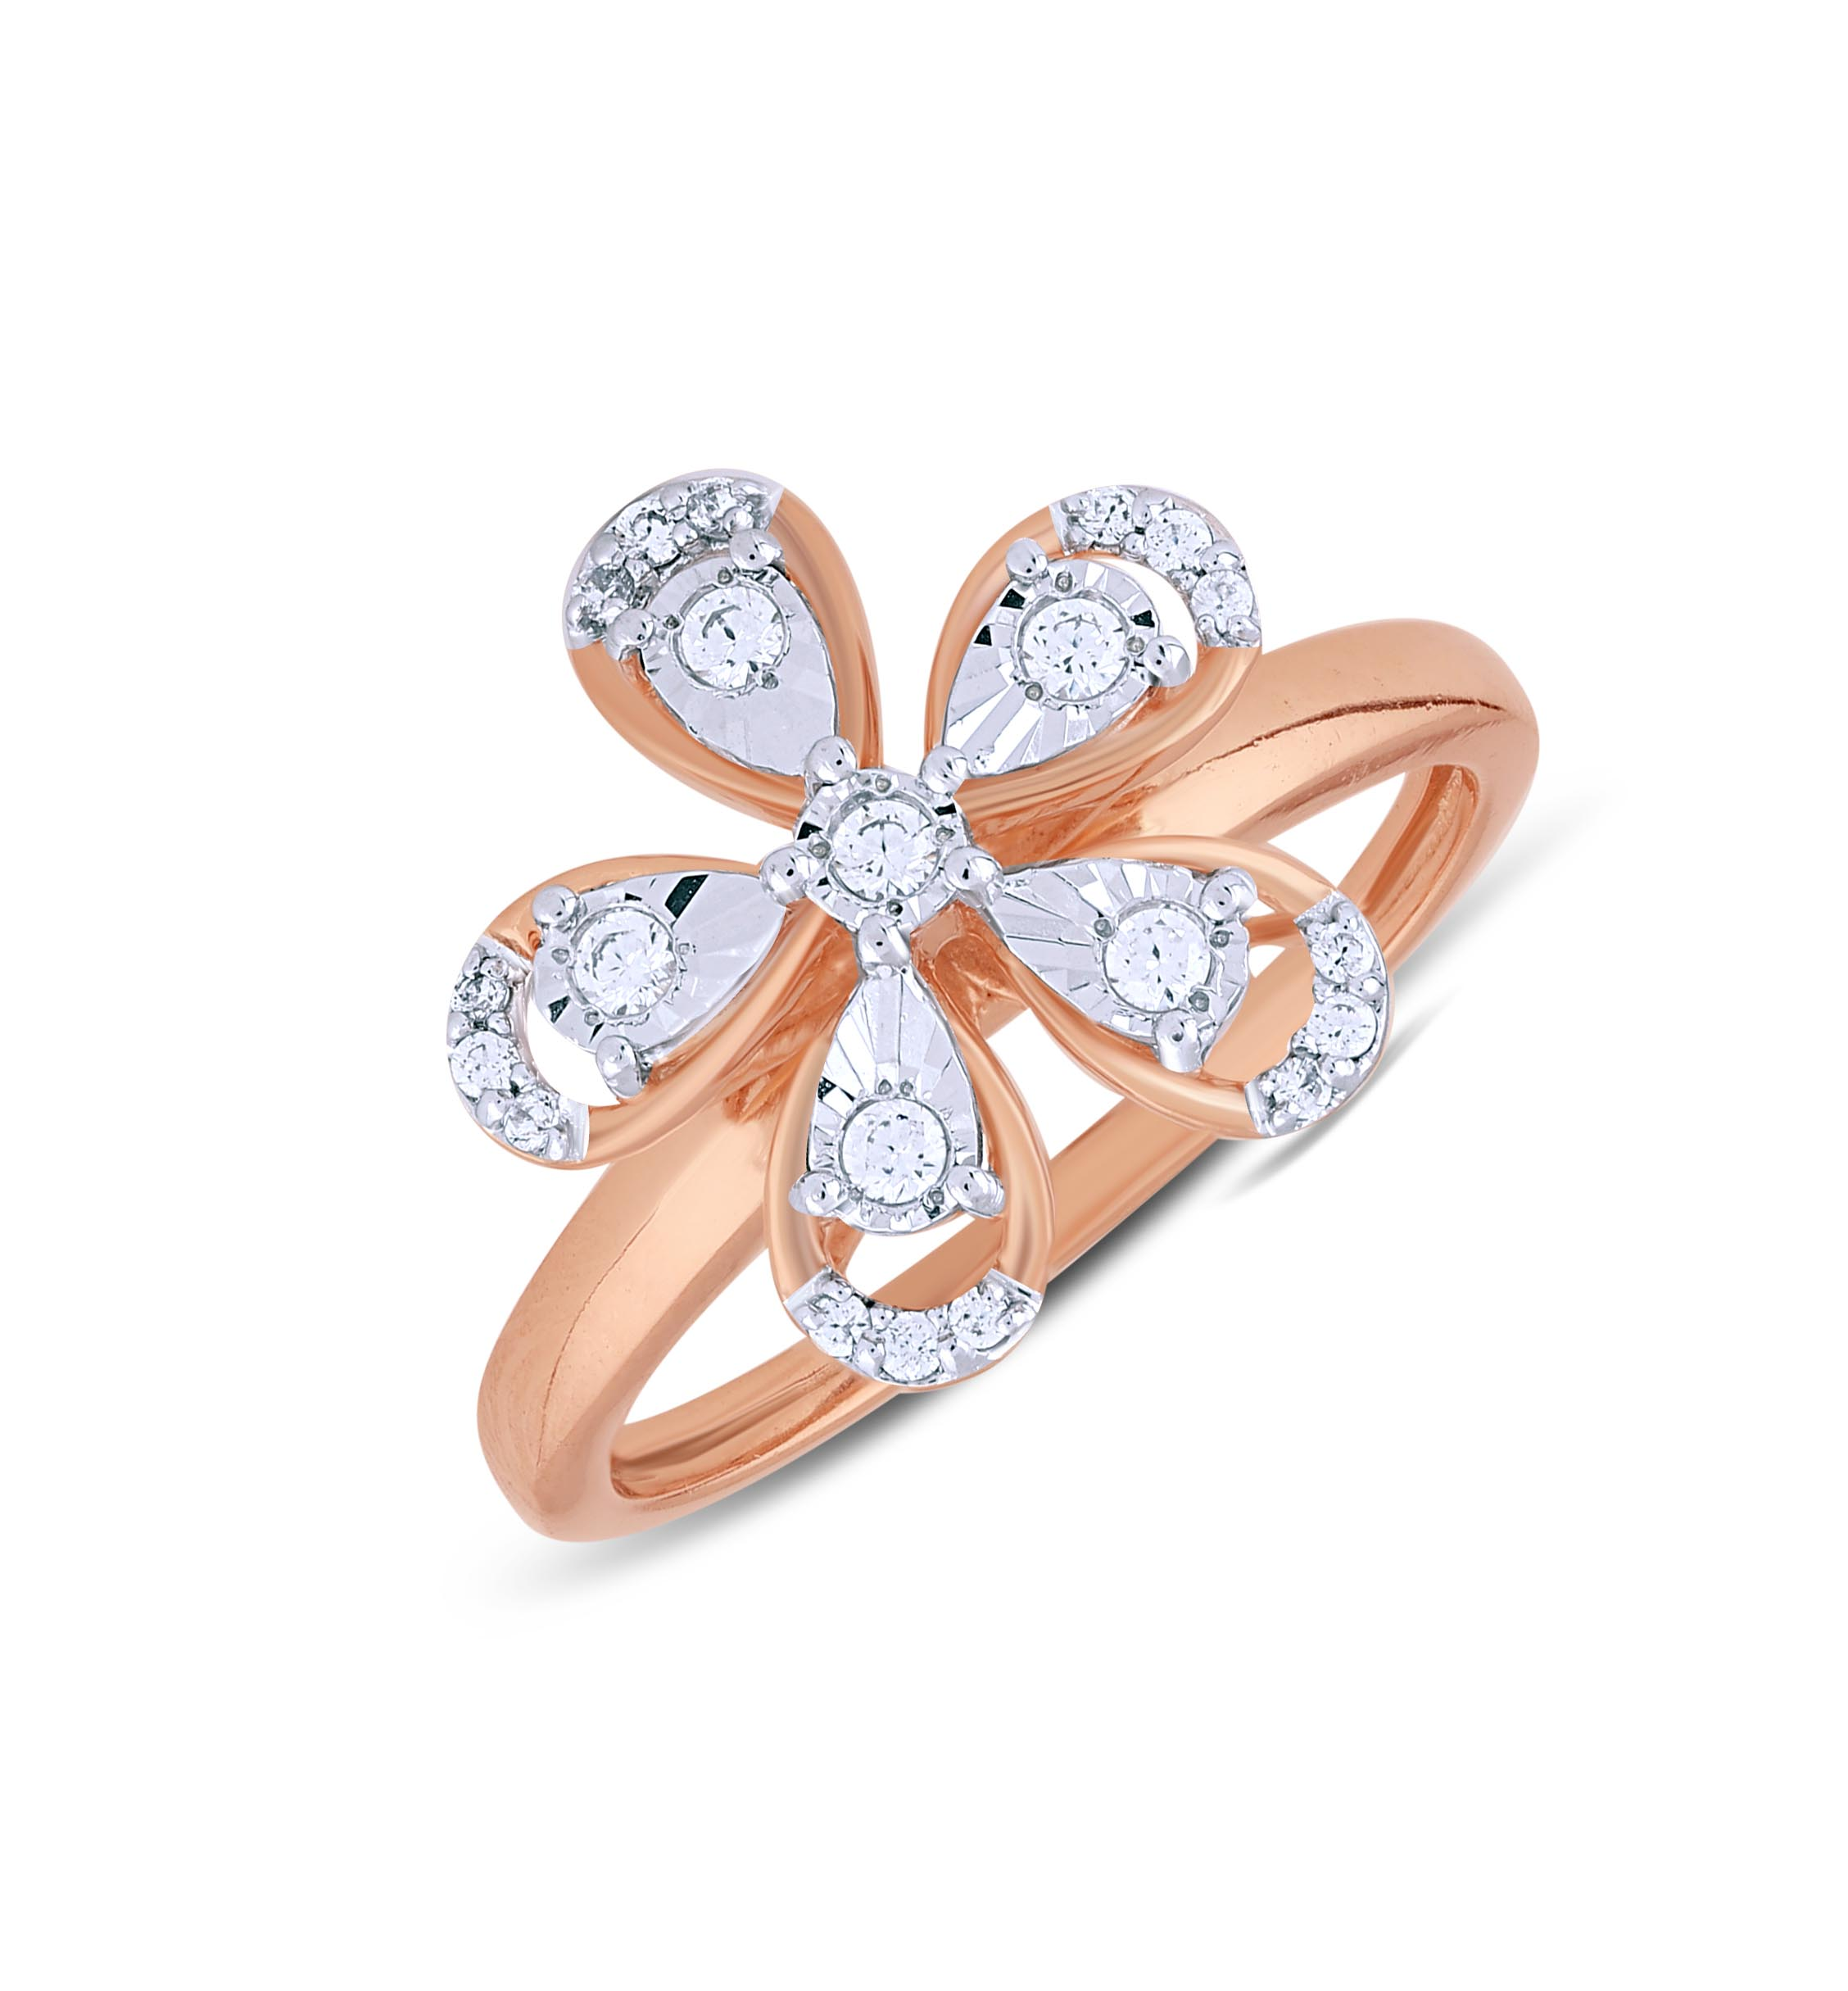 Tranquil Diamond Ladies Ring